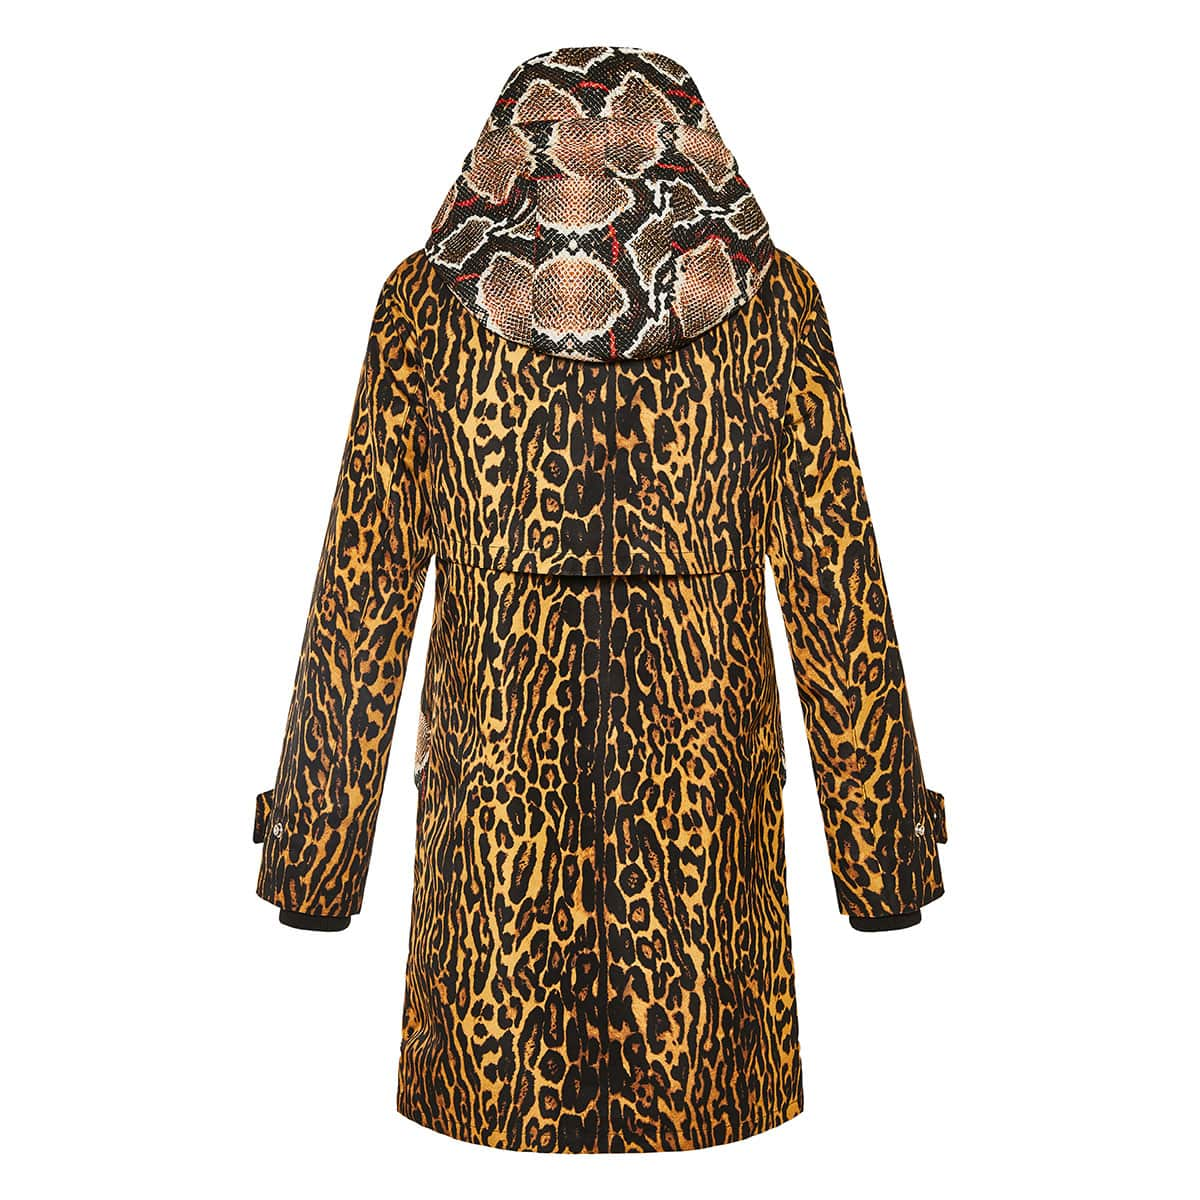 Animal printed parka jacket